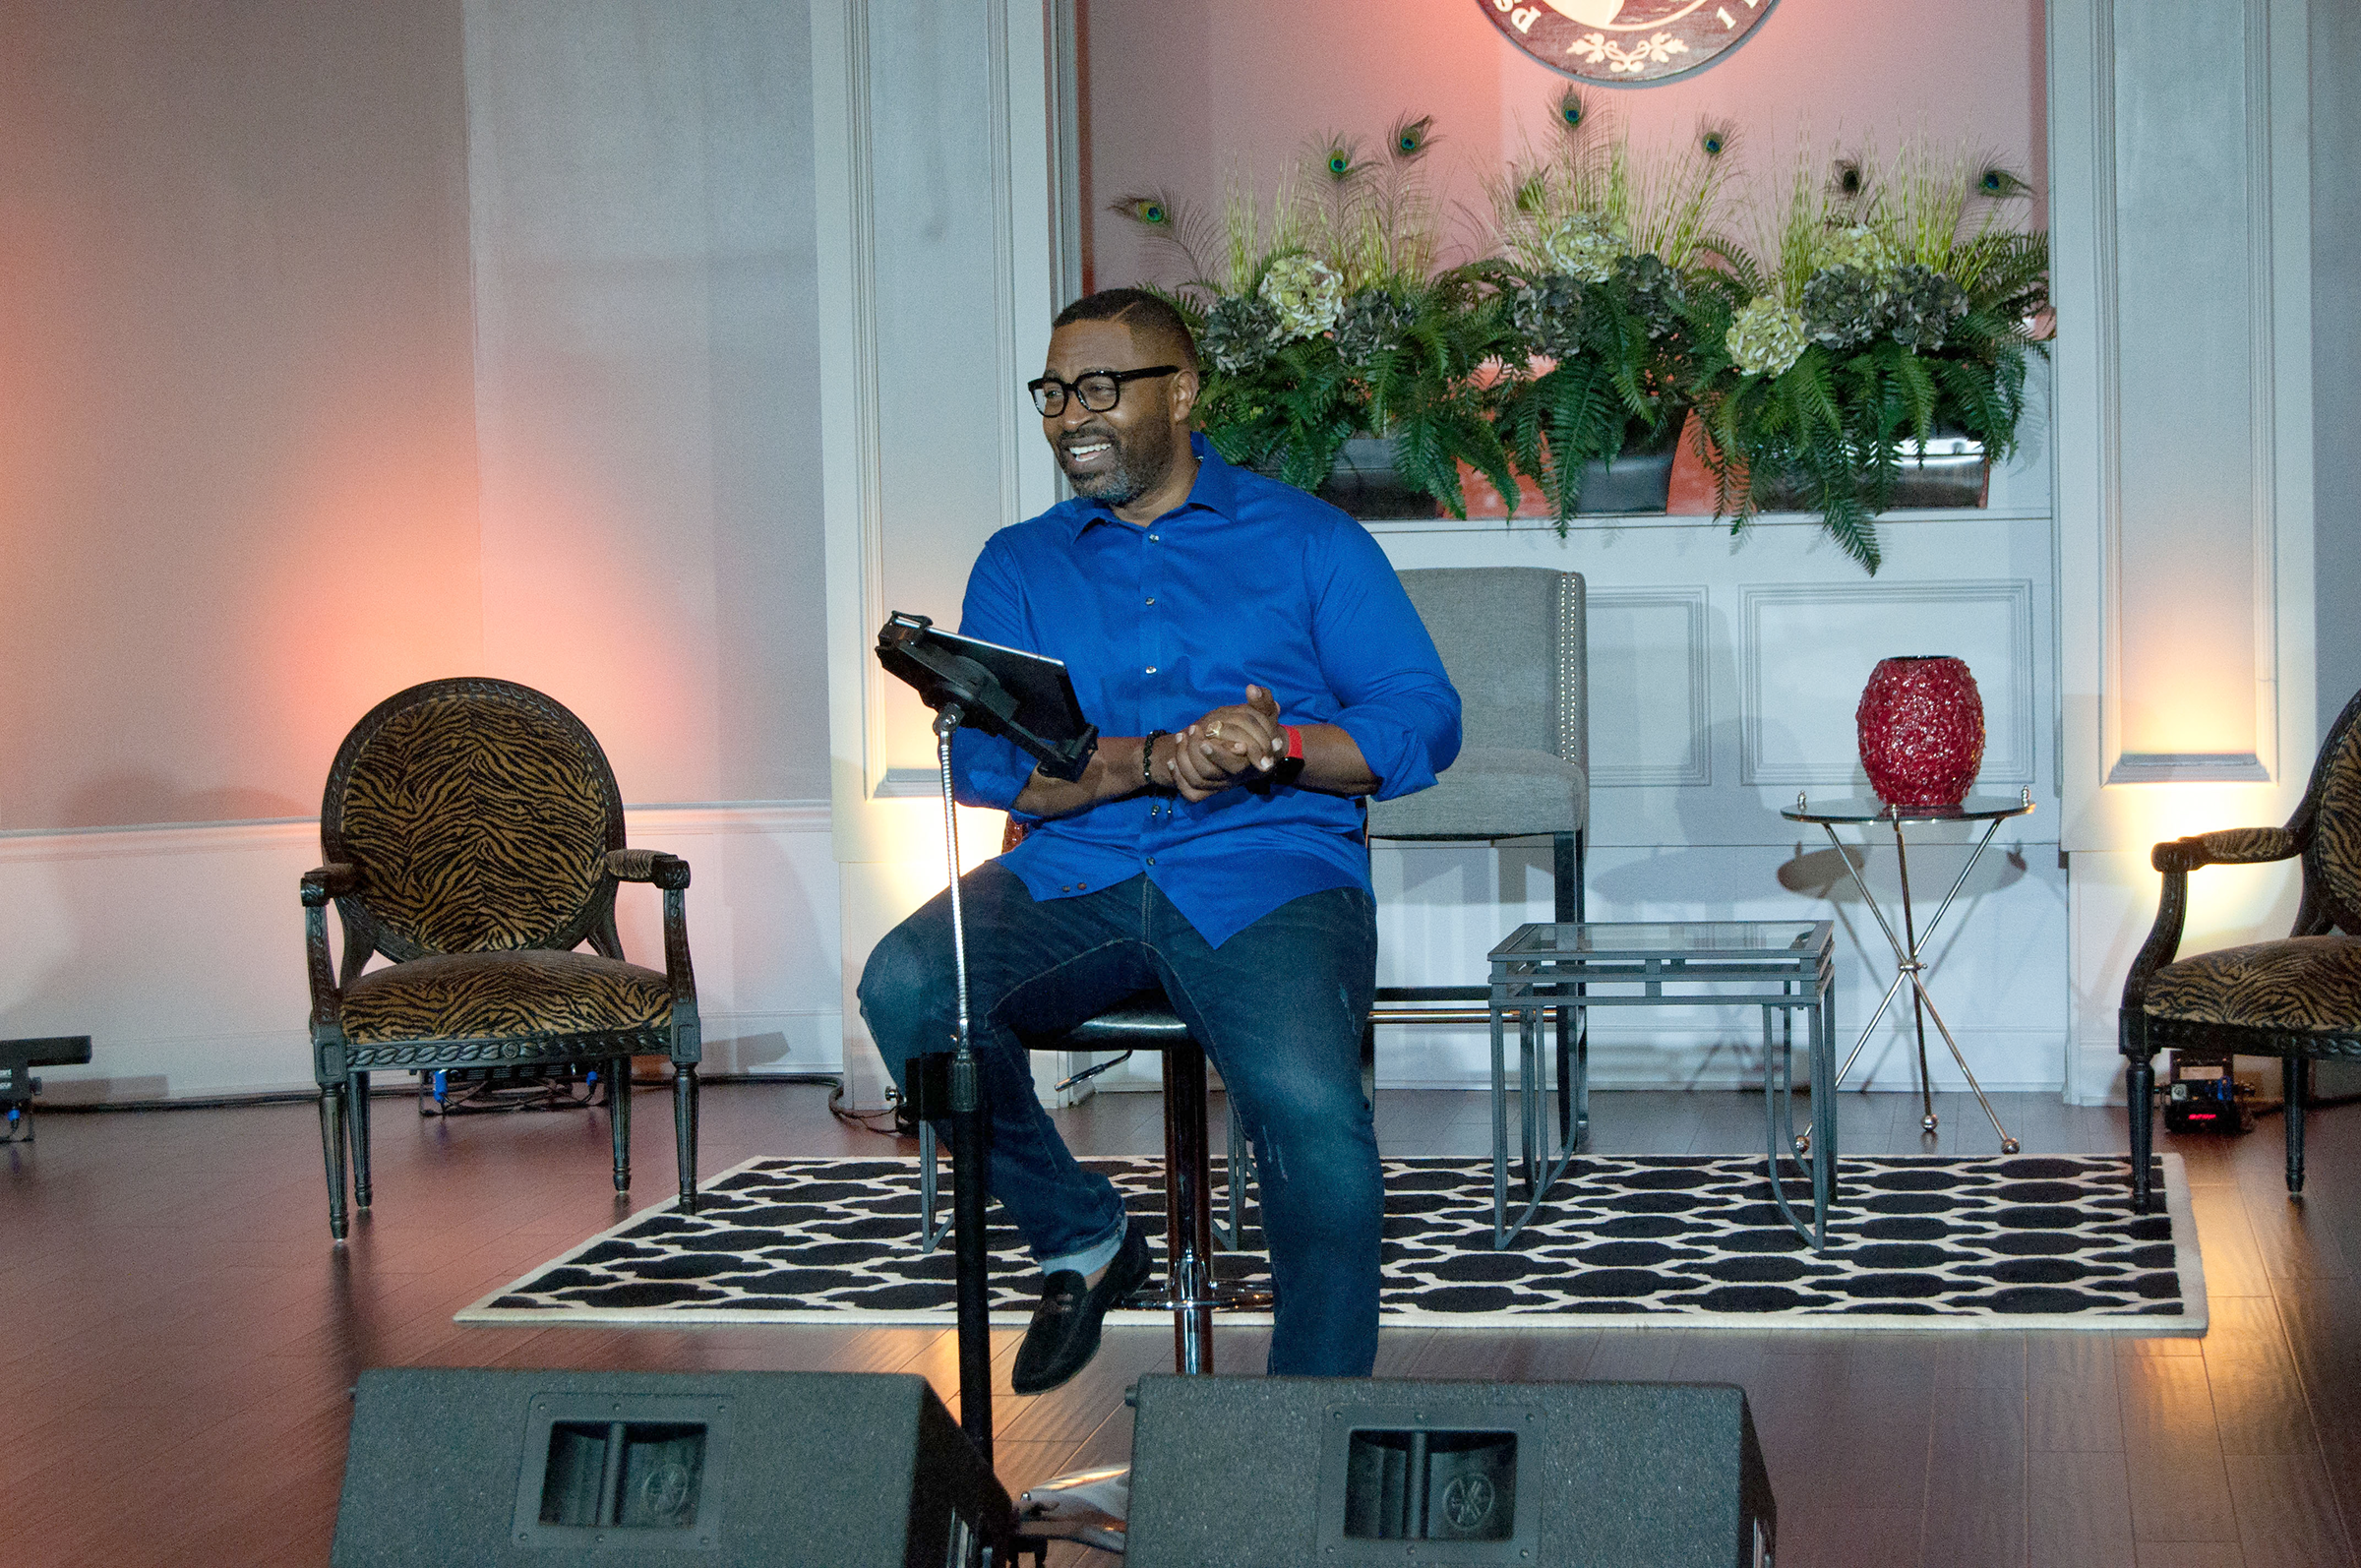 sidney p. malone - is the founder and Senior Pastor of New Growth In Christ Christian Center (NGIC) in Memphis, Tennessee; which serves over 1000 worshippers; including online members in New York, Florida, Georgia, Texas and Alabama.